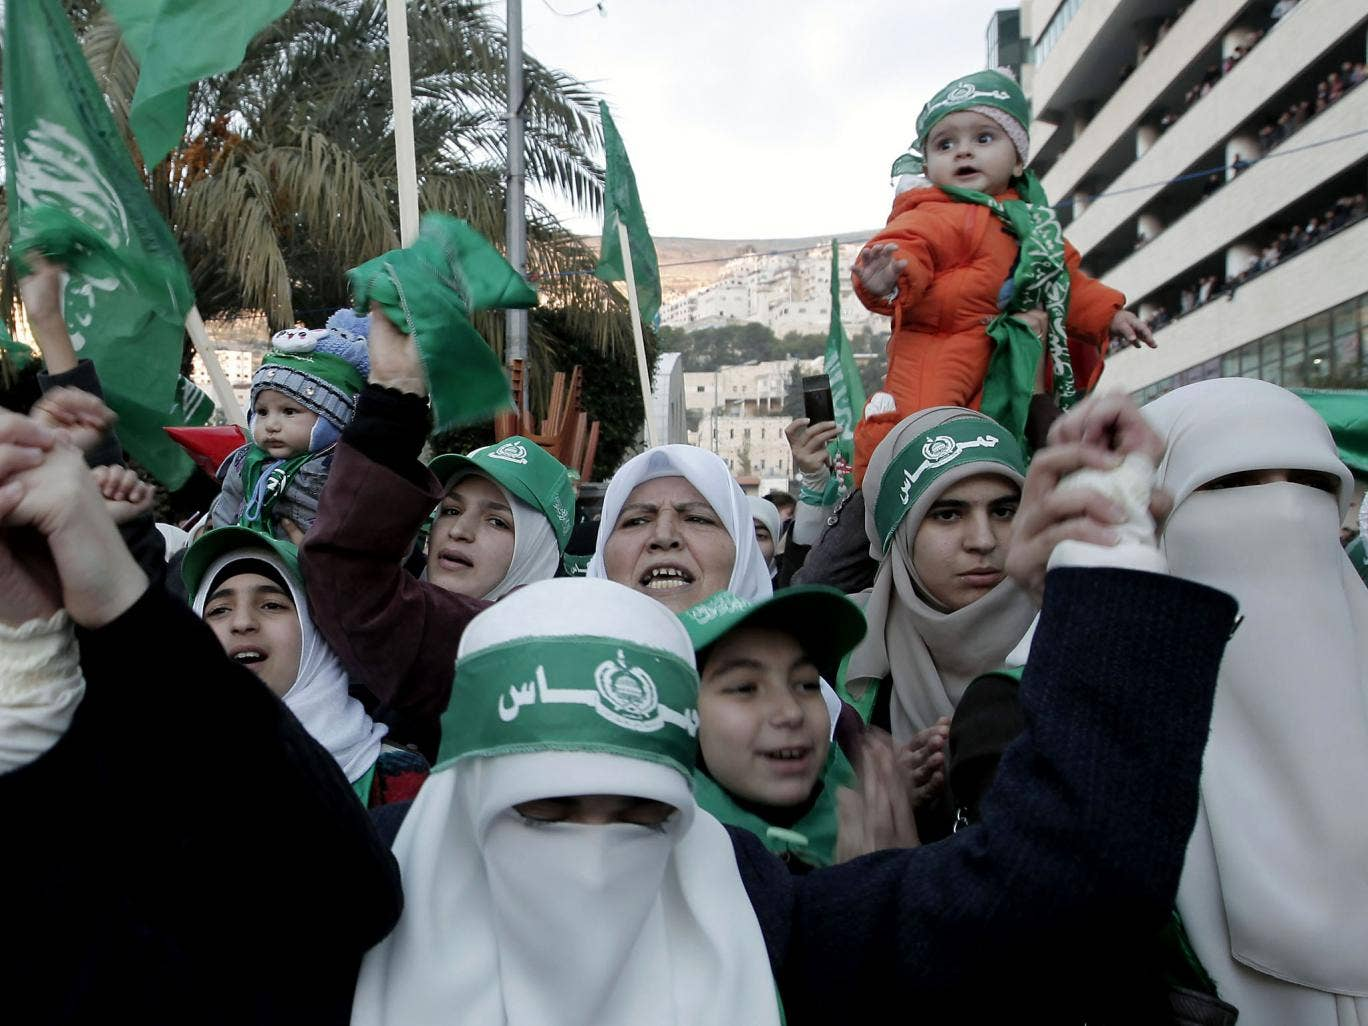 Thousands gathered for the militant Islamist group's first permitted rally in the West Bank in five years